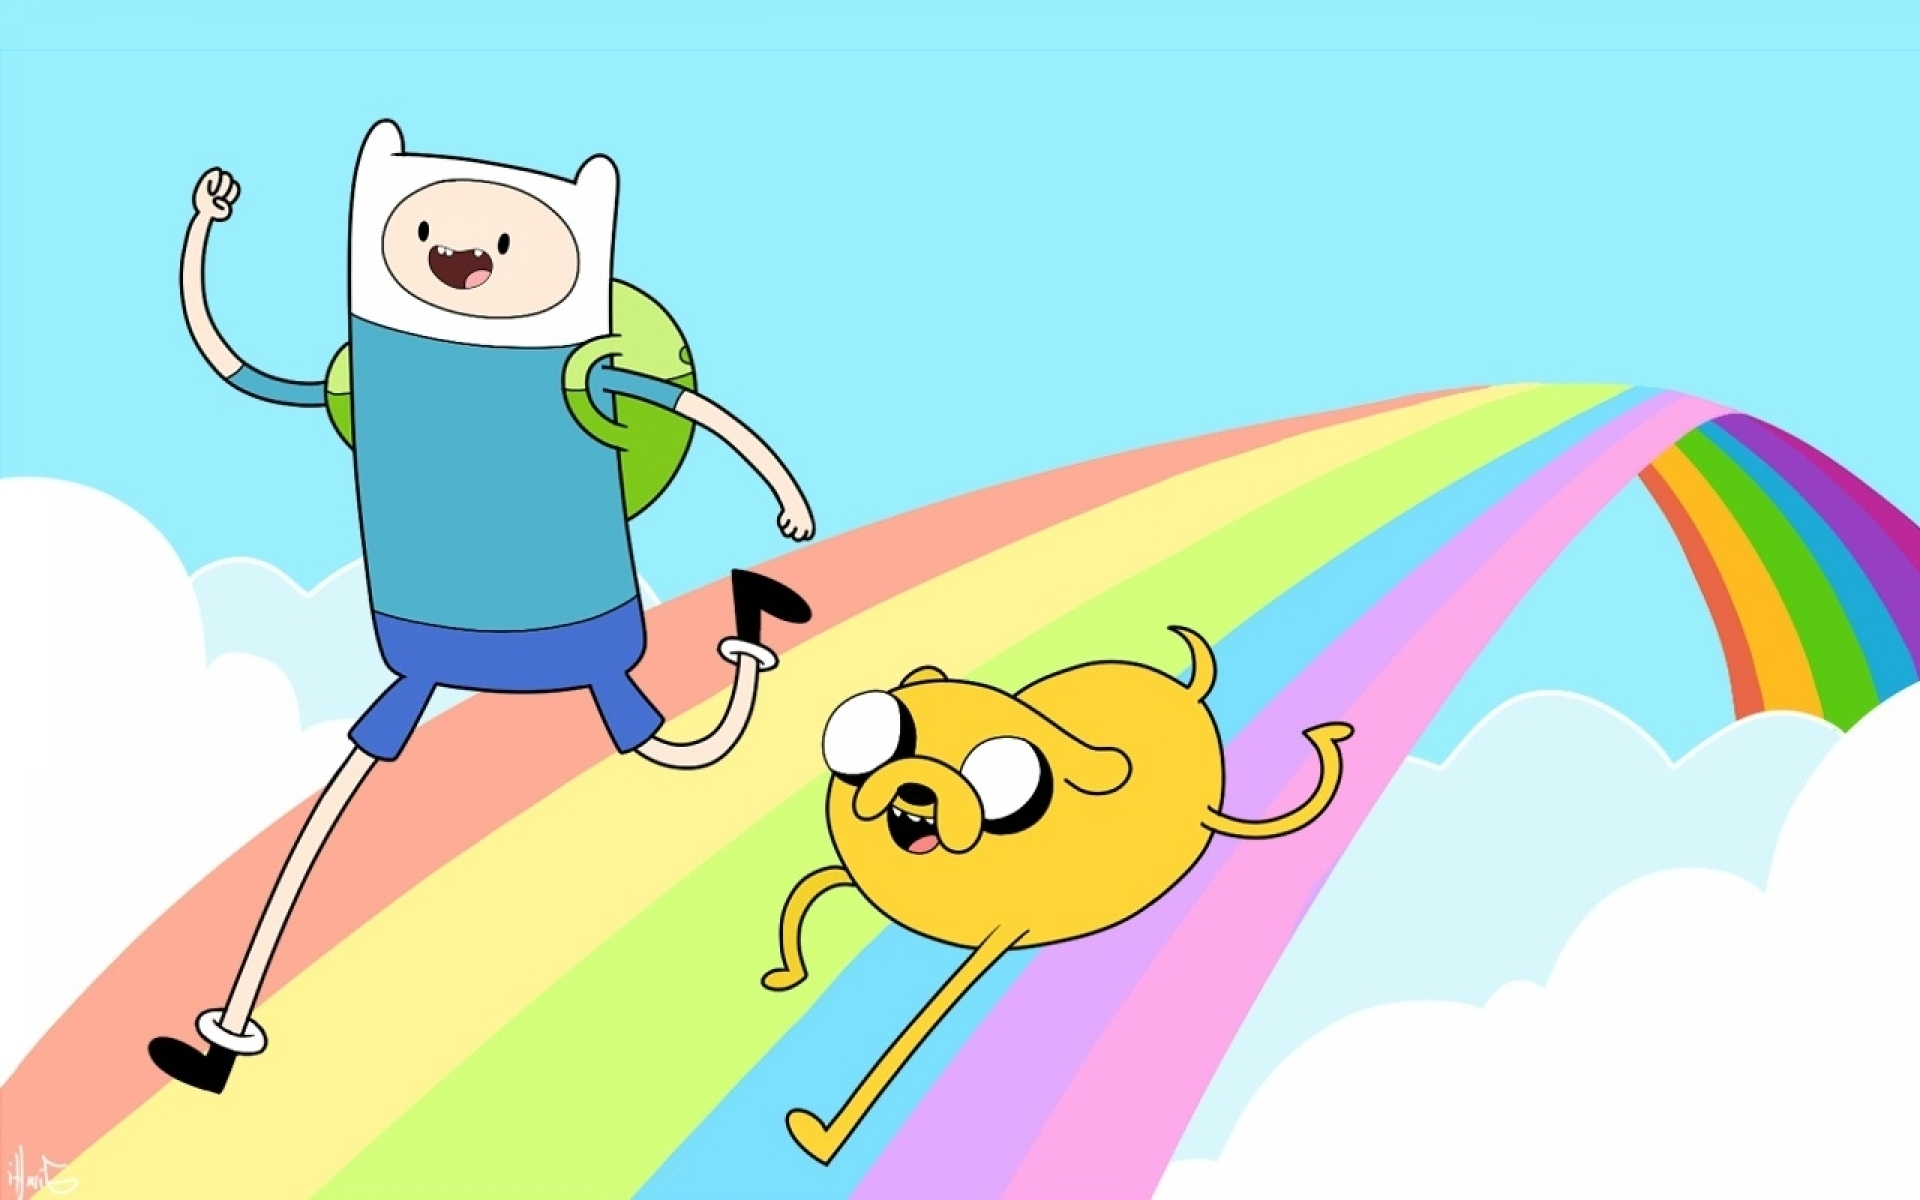 adventure time wallpapers download - photo #43